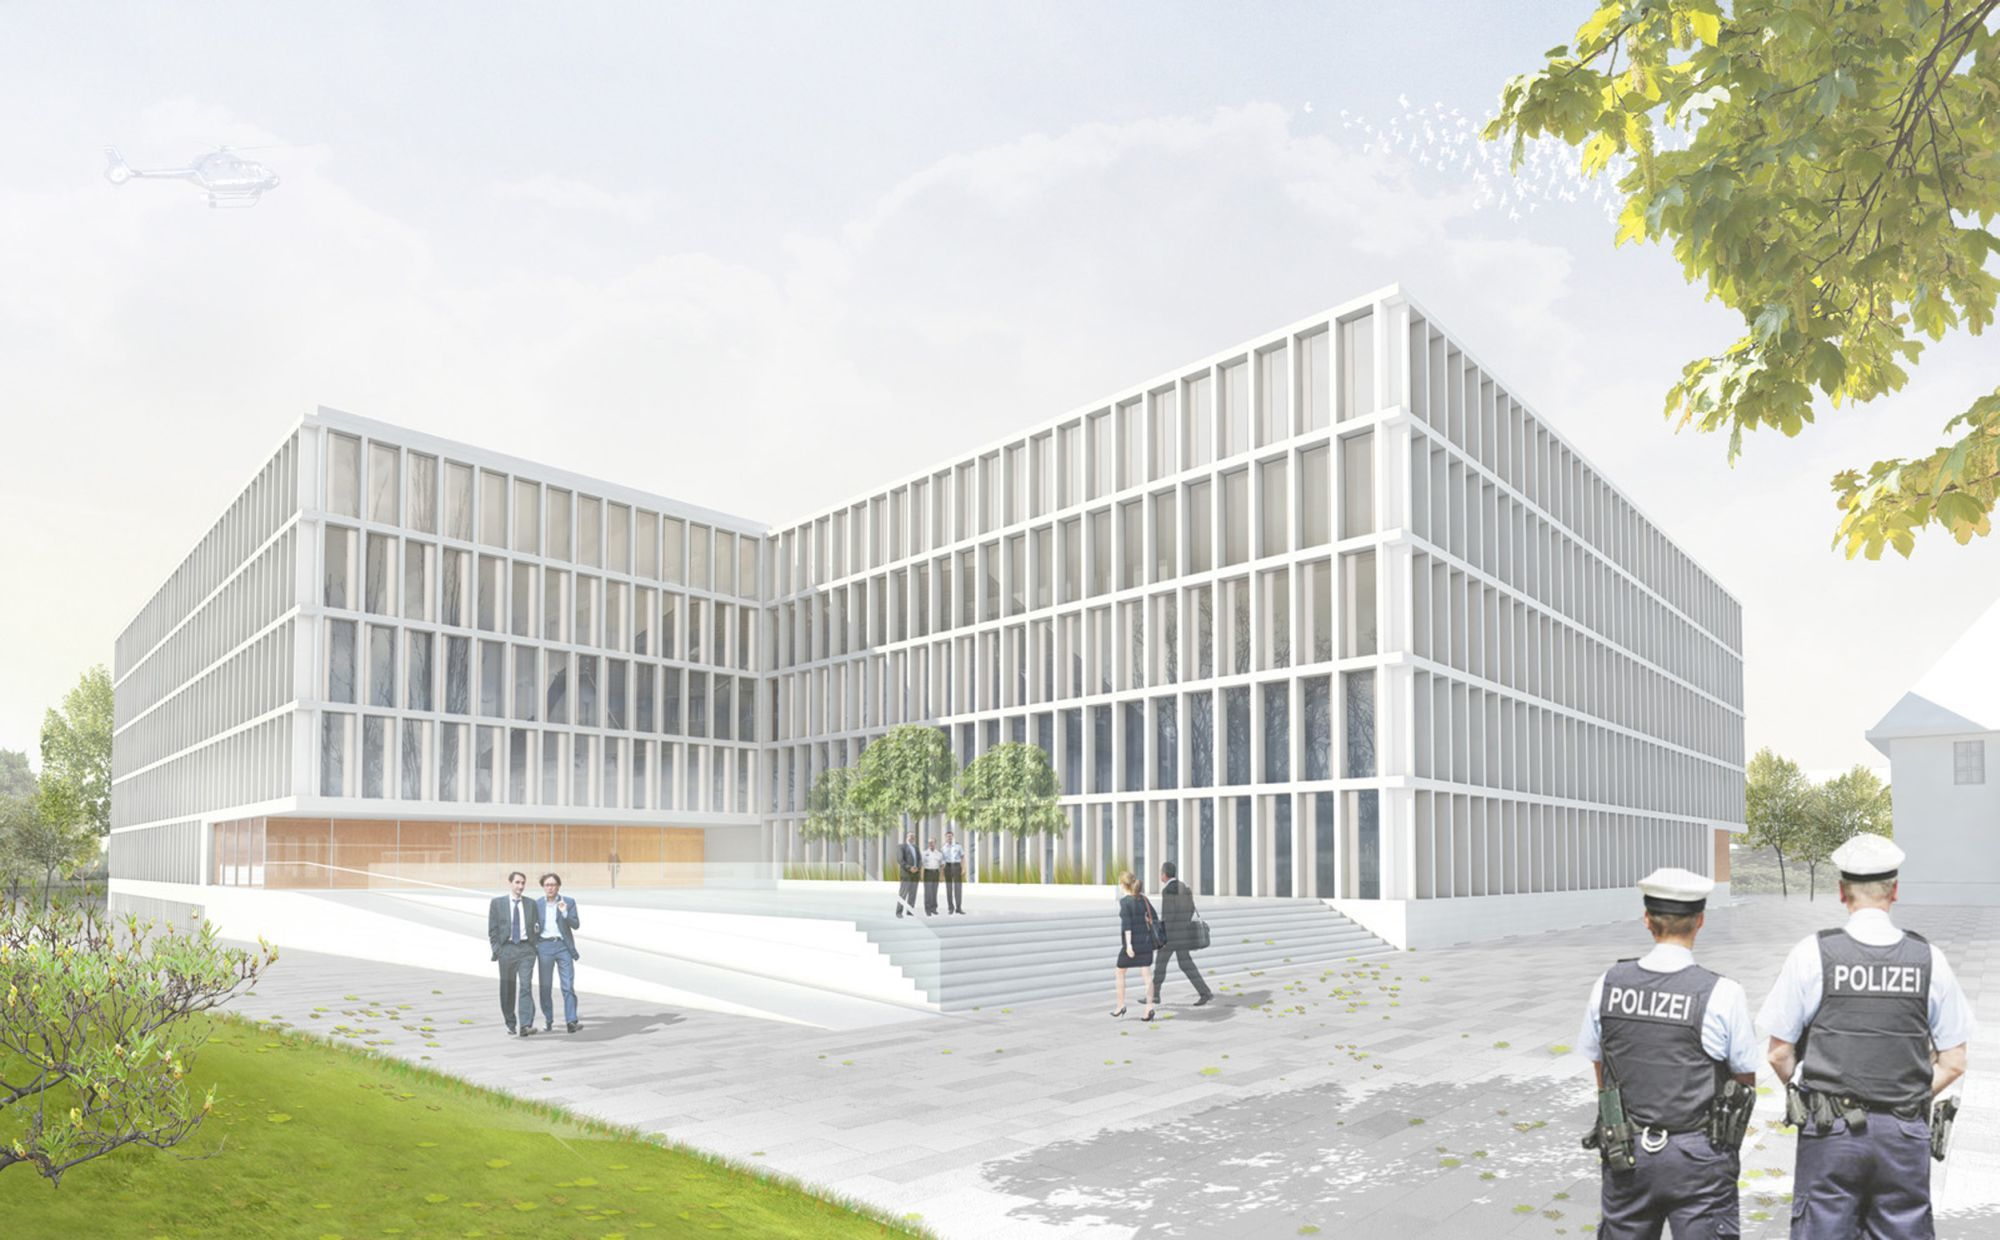 Visualisierung: CODE UNIQUE Architekten GmbH